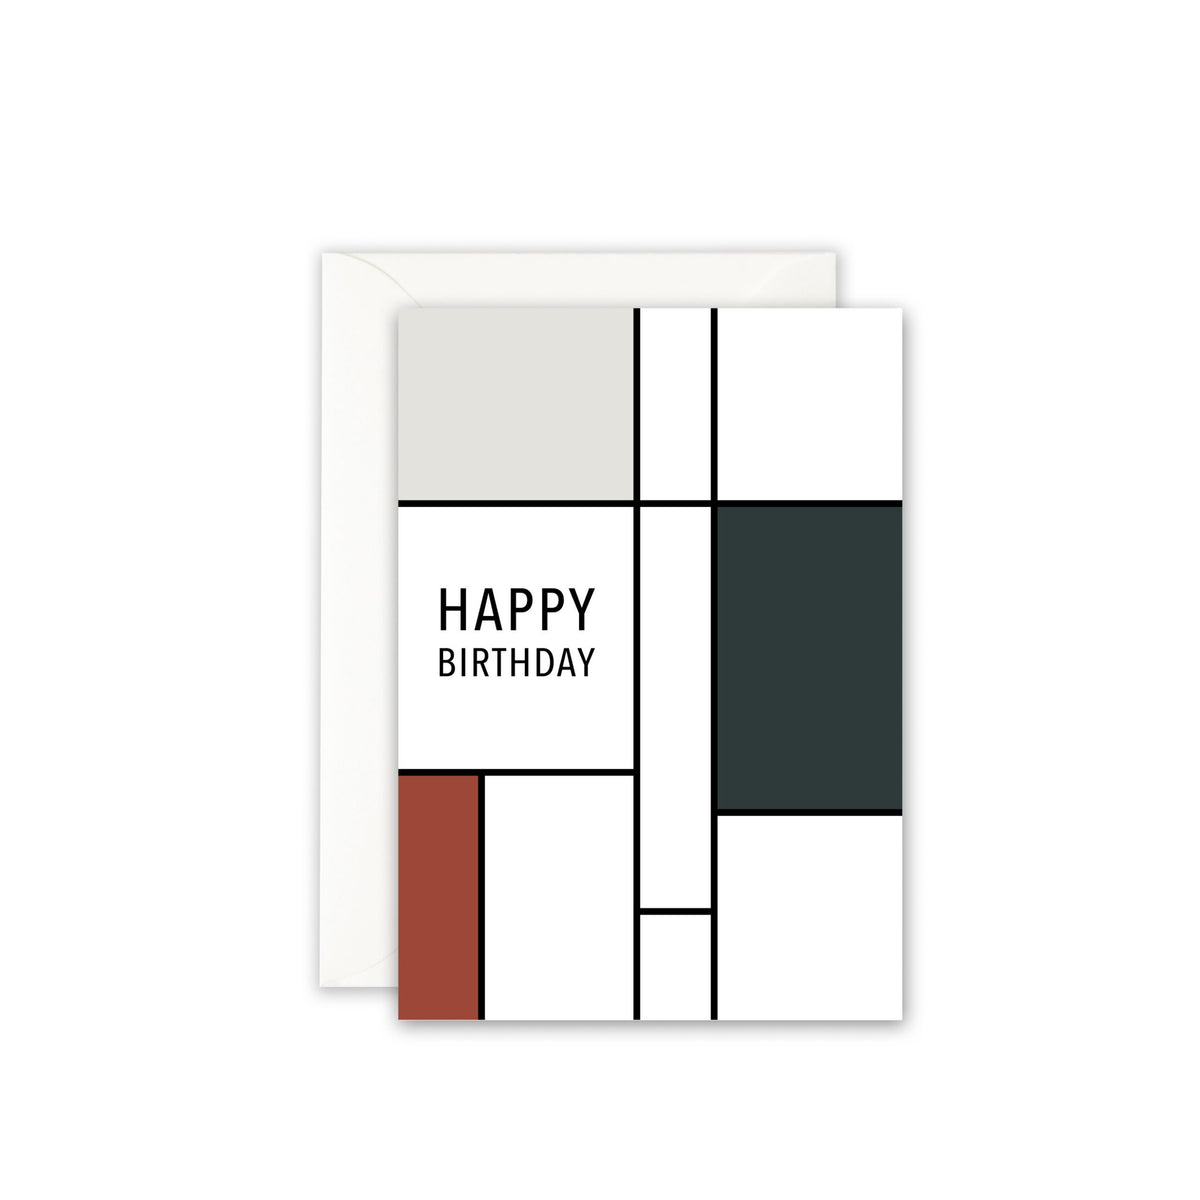 Grußkarte · HAPPY BIRTHDAY (GREY SQUARE) Grußkarte Leo la Douce